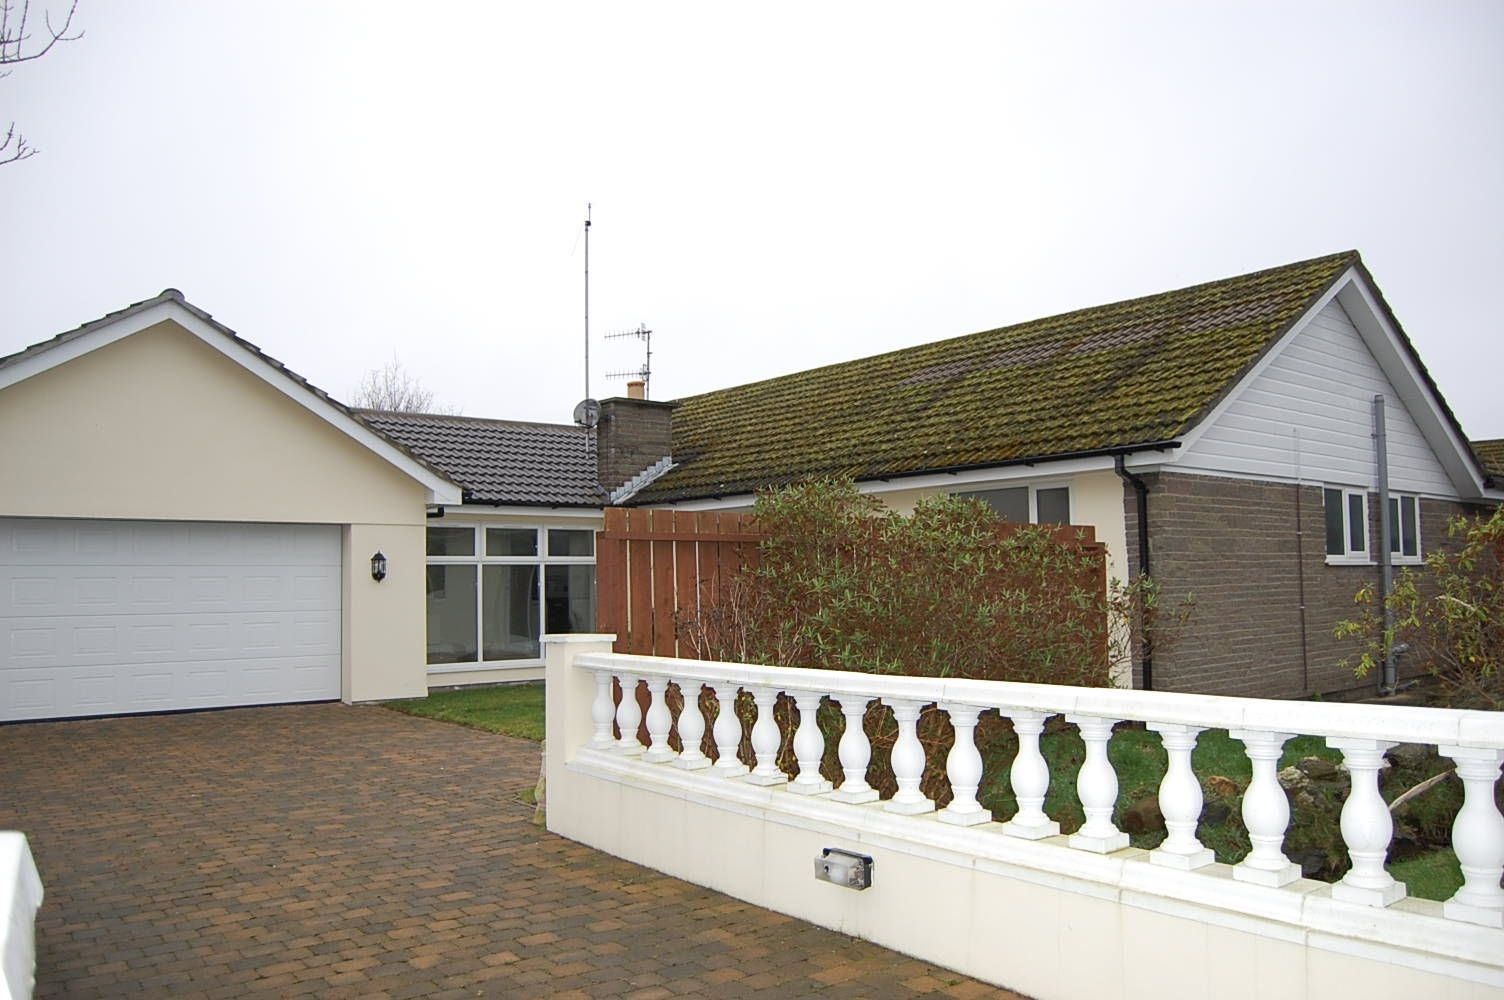 3 bedroom detached bungalow For Sale in Colby - Photograph 1